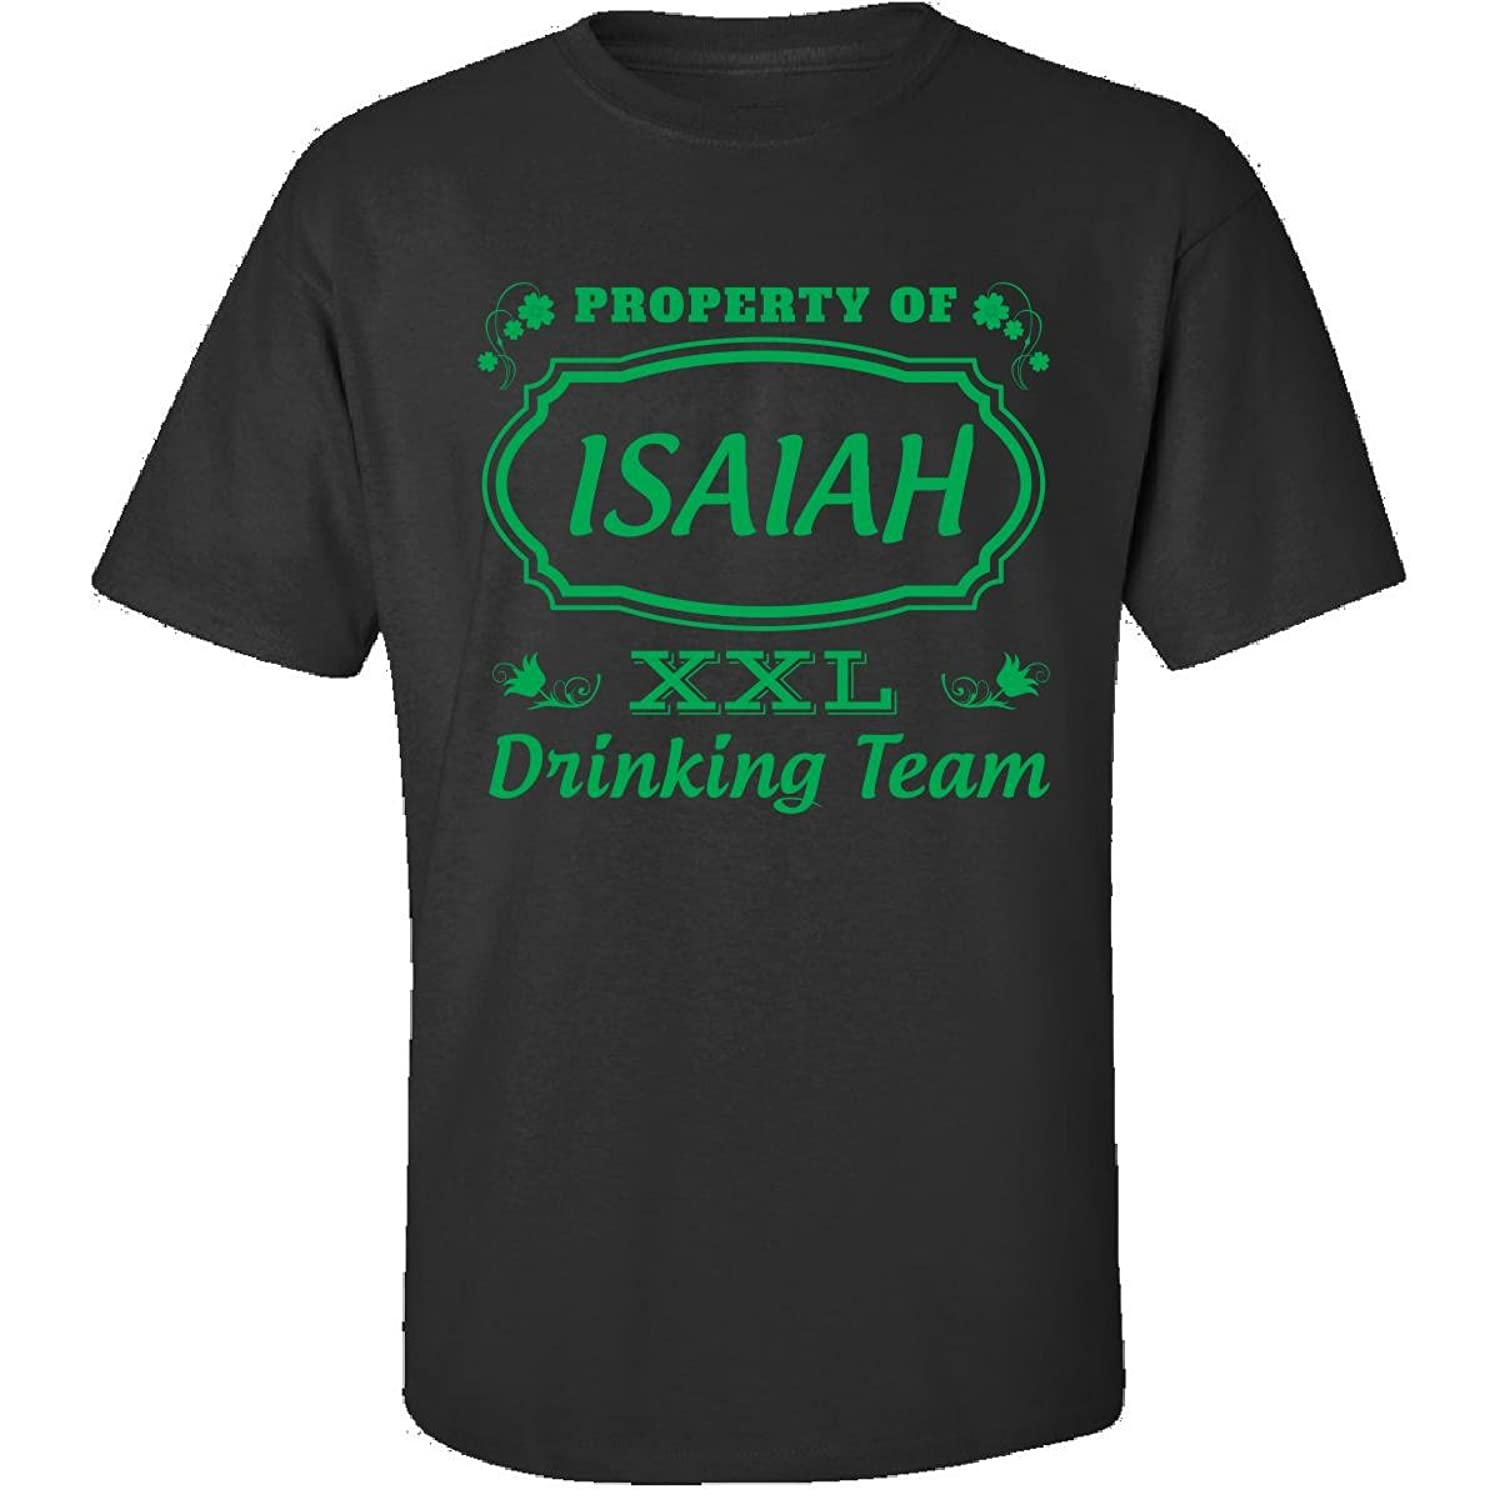 Property Of Isaiah St Patrick Day Beer Drinking Team - Adult Shirt